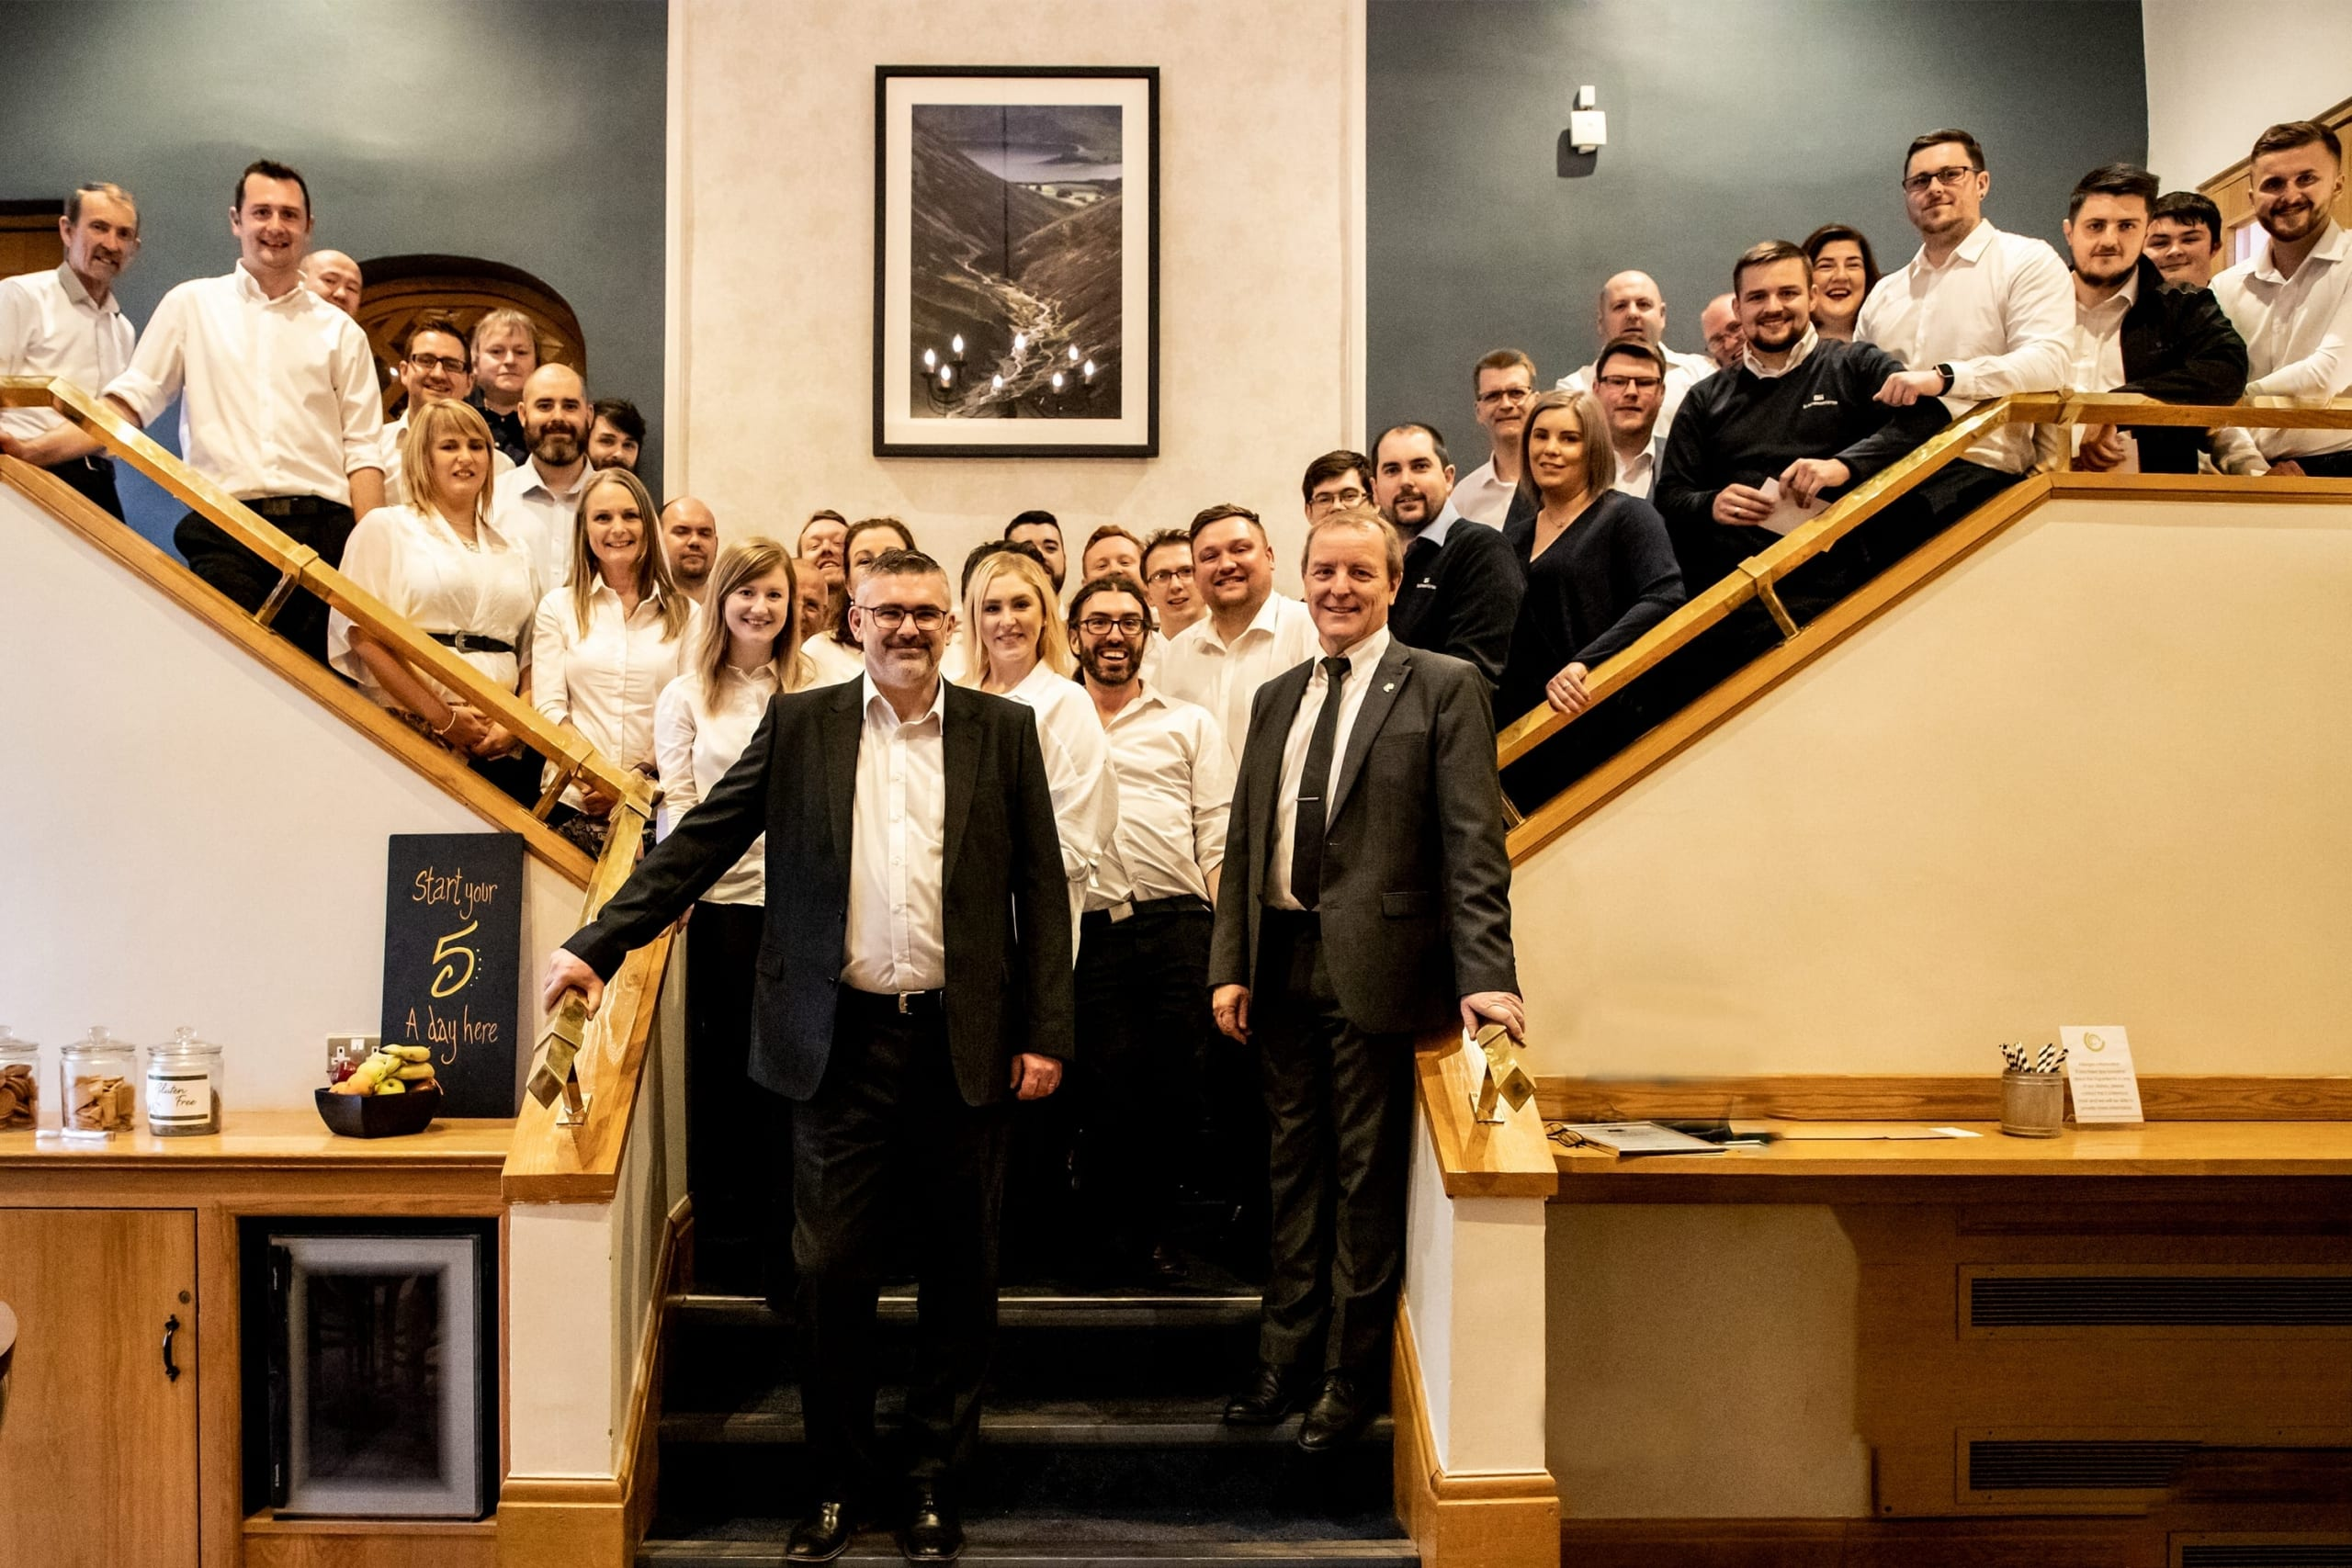 Business Micros | BM303 The team at Business Micros is celebrating 40 years in 2019 1 scaled